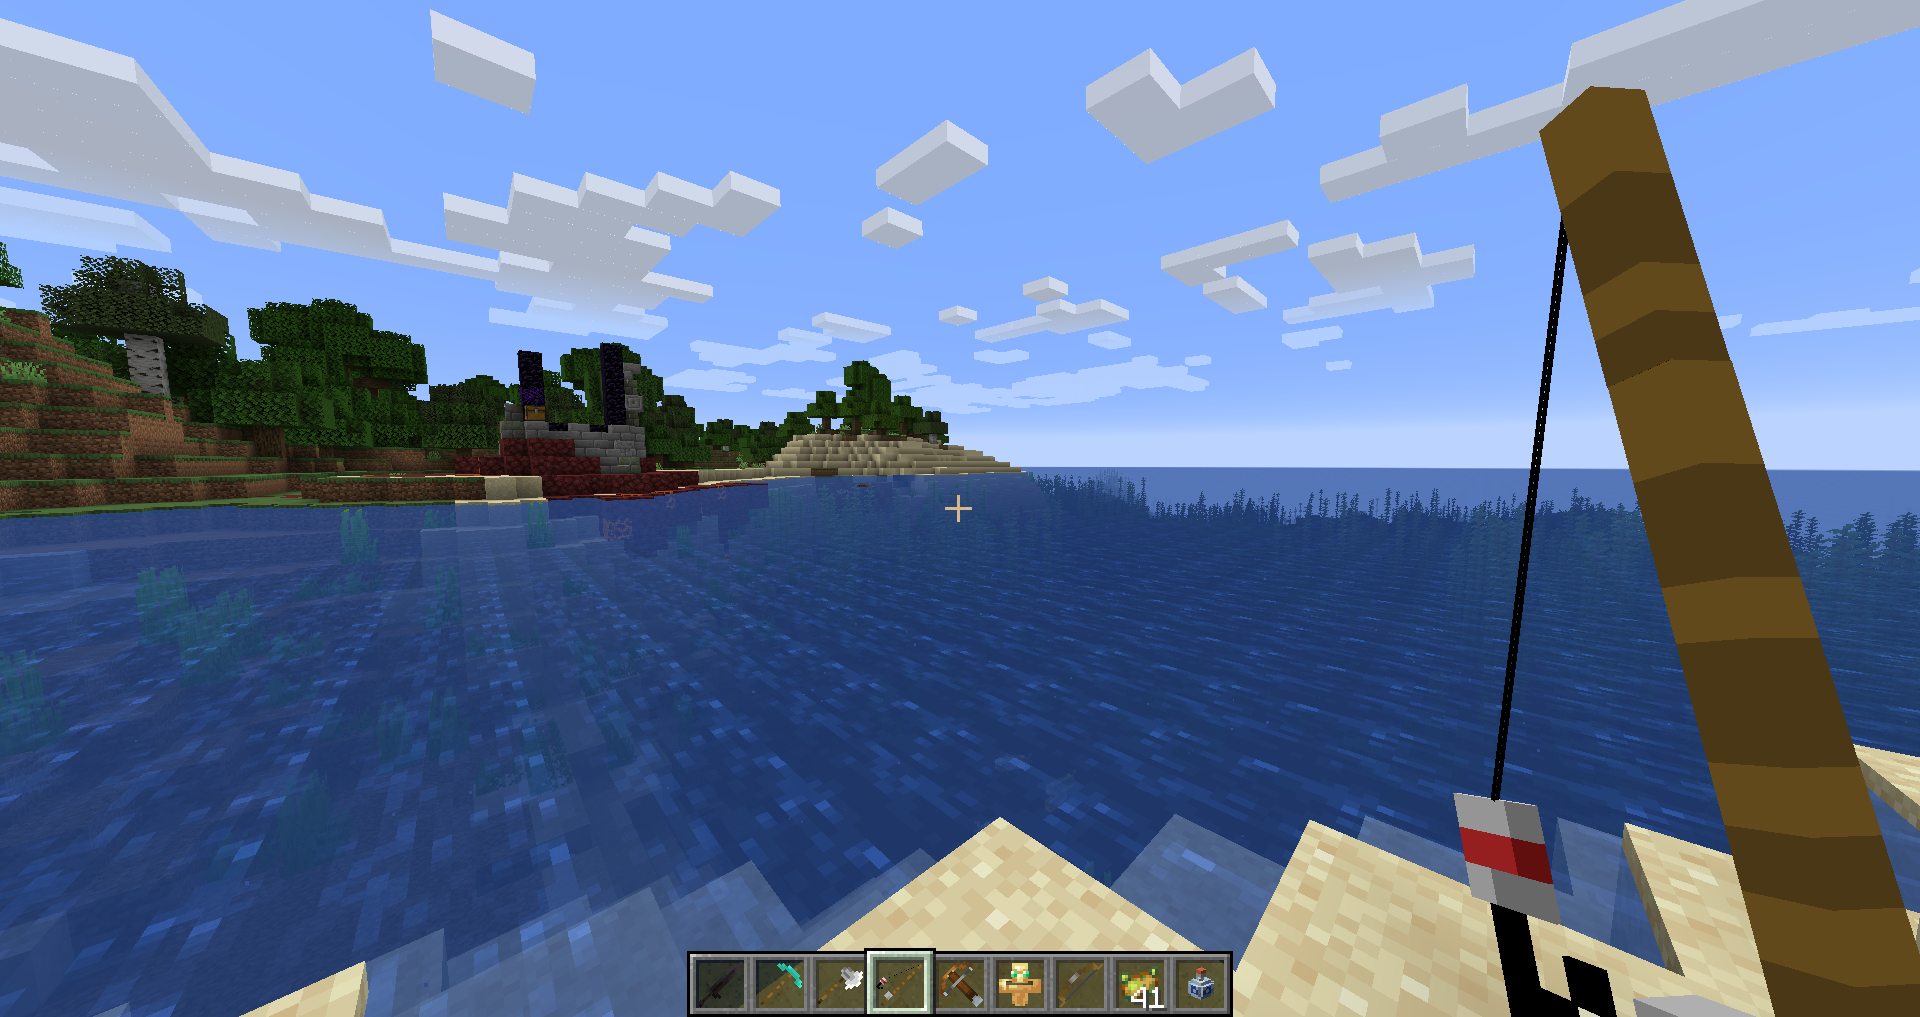 Fishing Rod in Action (Not in the pack ATM)